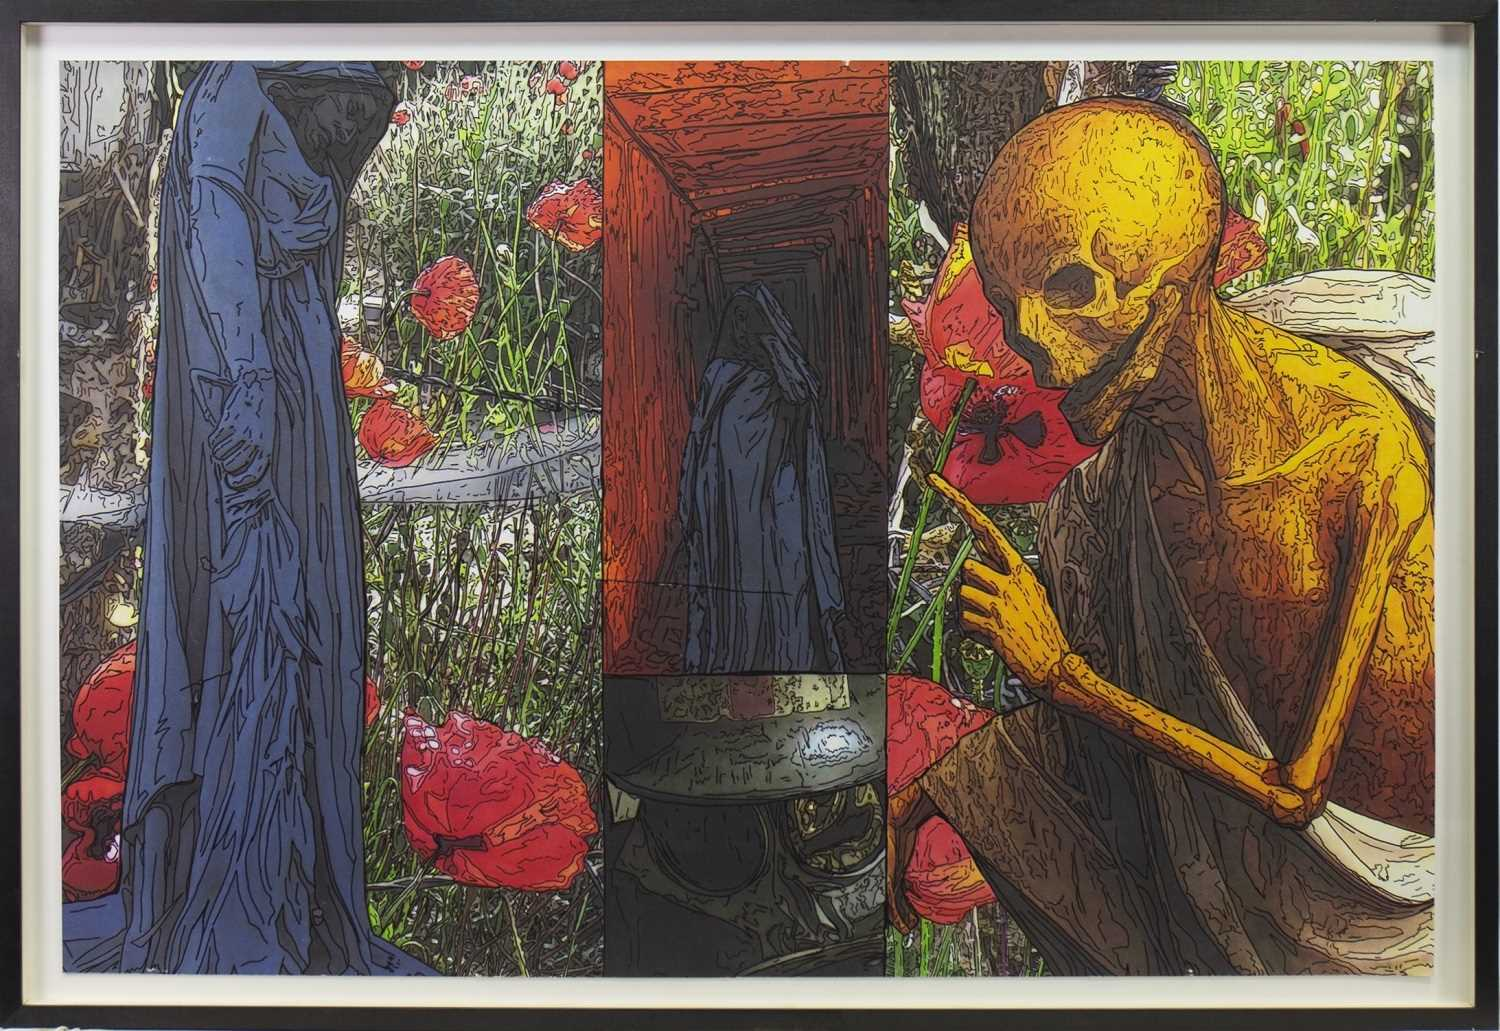 Lot 516-LIFE AND DEATH, PEN OVER PRINT BY PETER J SCOTT